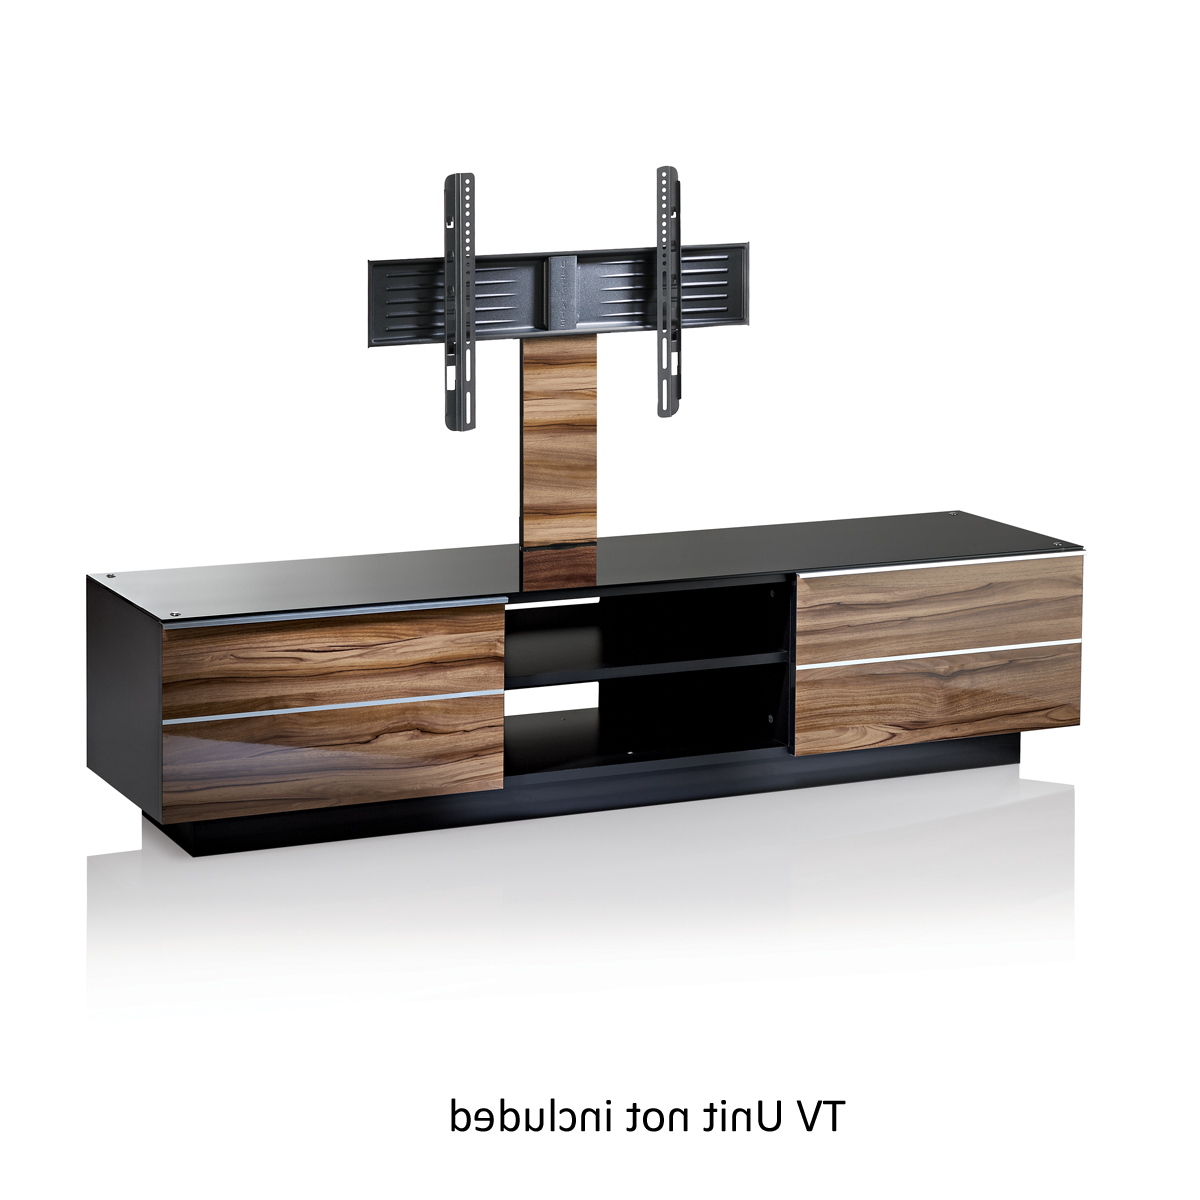 Newest Cantilever Tv Stands Intended For Milano G B 80 Mln Cantilever Tv Bracket,ukcf Ultimate,,uk Cf (Gallery 19 of 20)